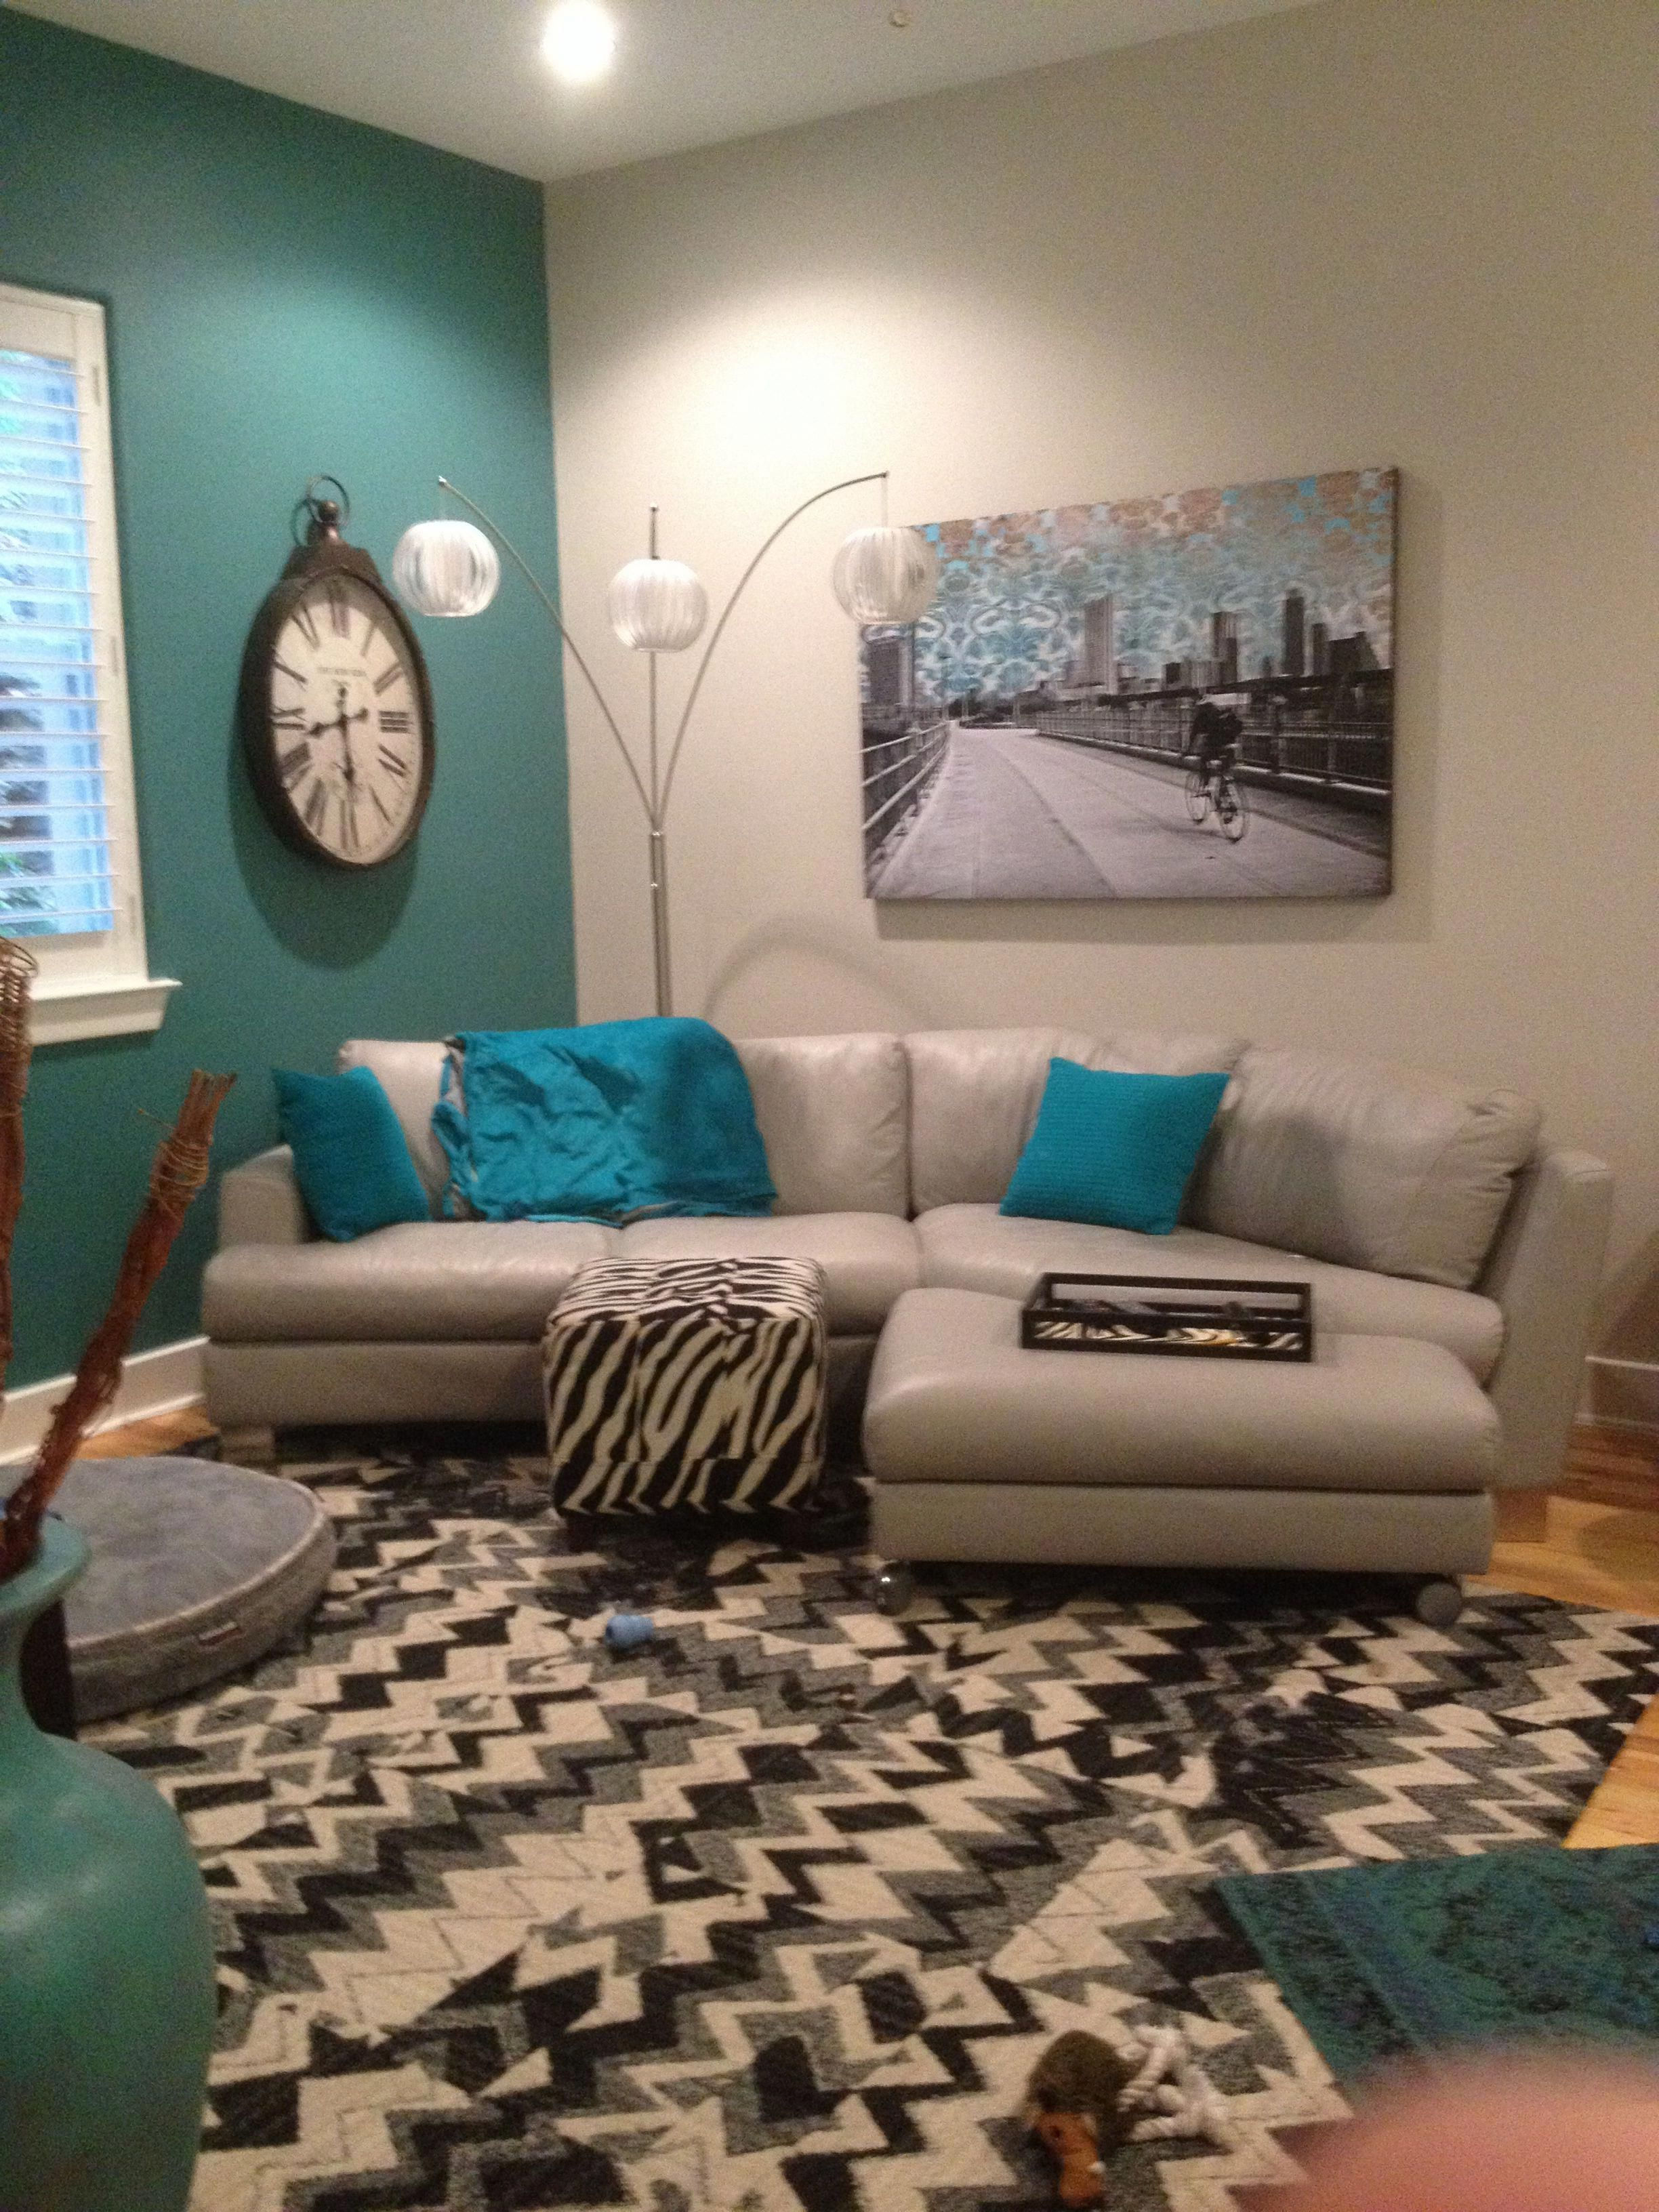 Turquoise Dining Room Ideas Turquoise Rooms Turquoise Living Room Accessories Using Turquoi Living Room Turquoise Turquoise Living Room Decor Turquoise Room #teal #and #brown #living #room #accessories